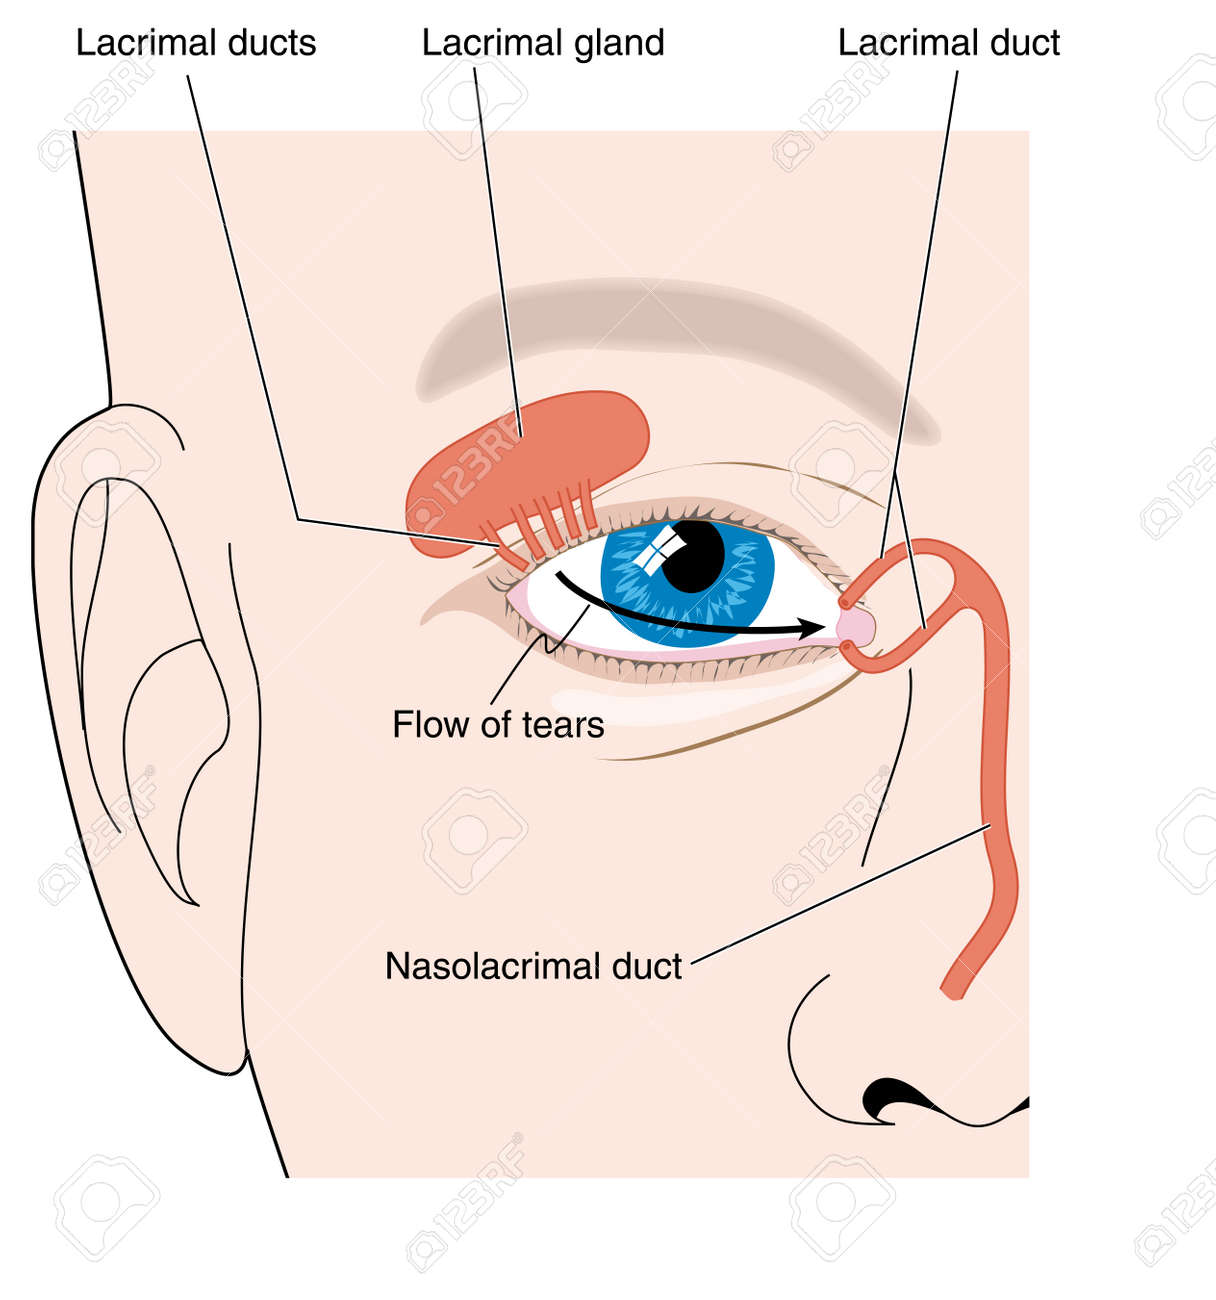 Production Of Tears From The Lacrimal Gland And Flow Of Tears